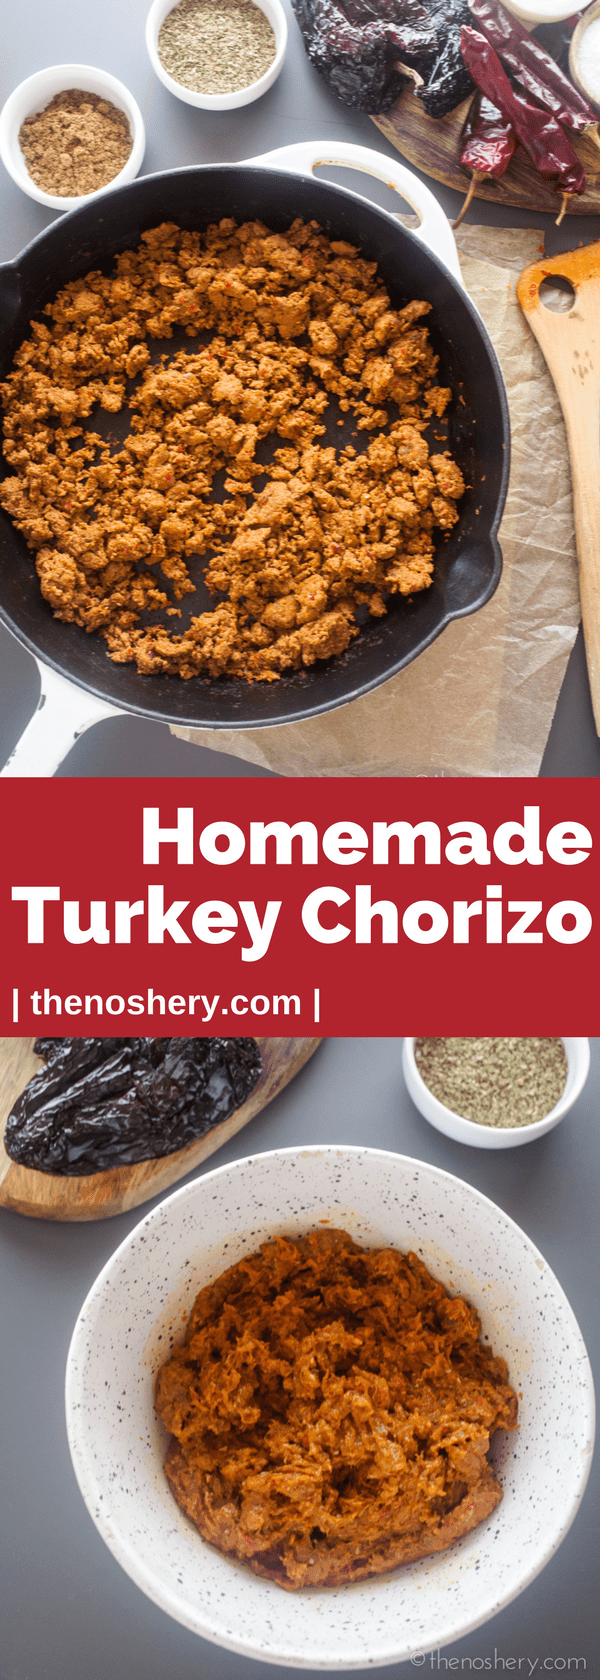 Homemade Turkey Chorizo | A healthier version of traditional chorizo with all the flavor. I make this part of my regular meal planning for easy breakfast tacos or burritos. | The Noshery